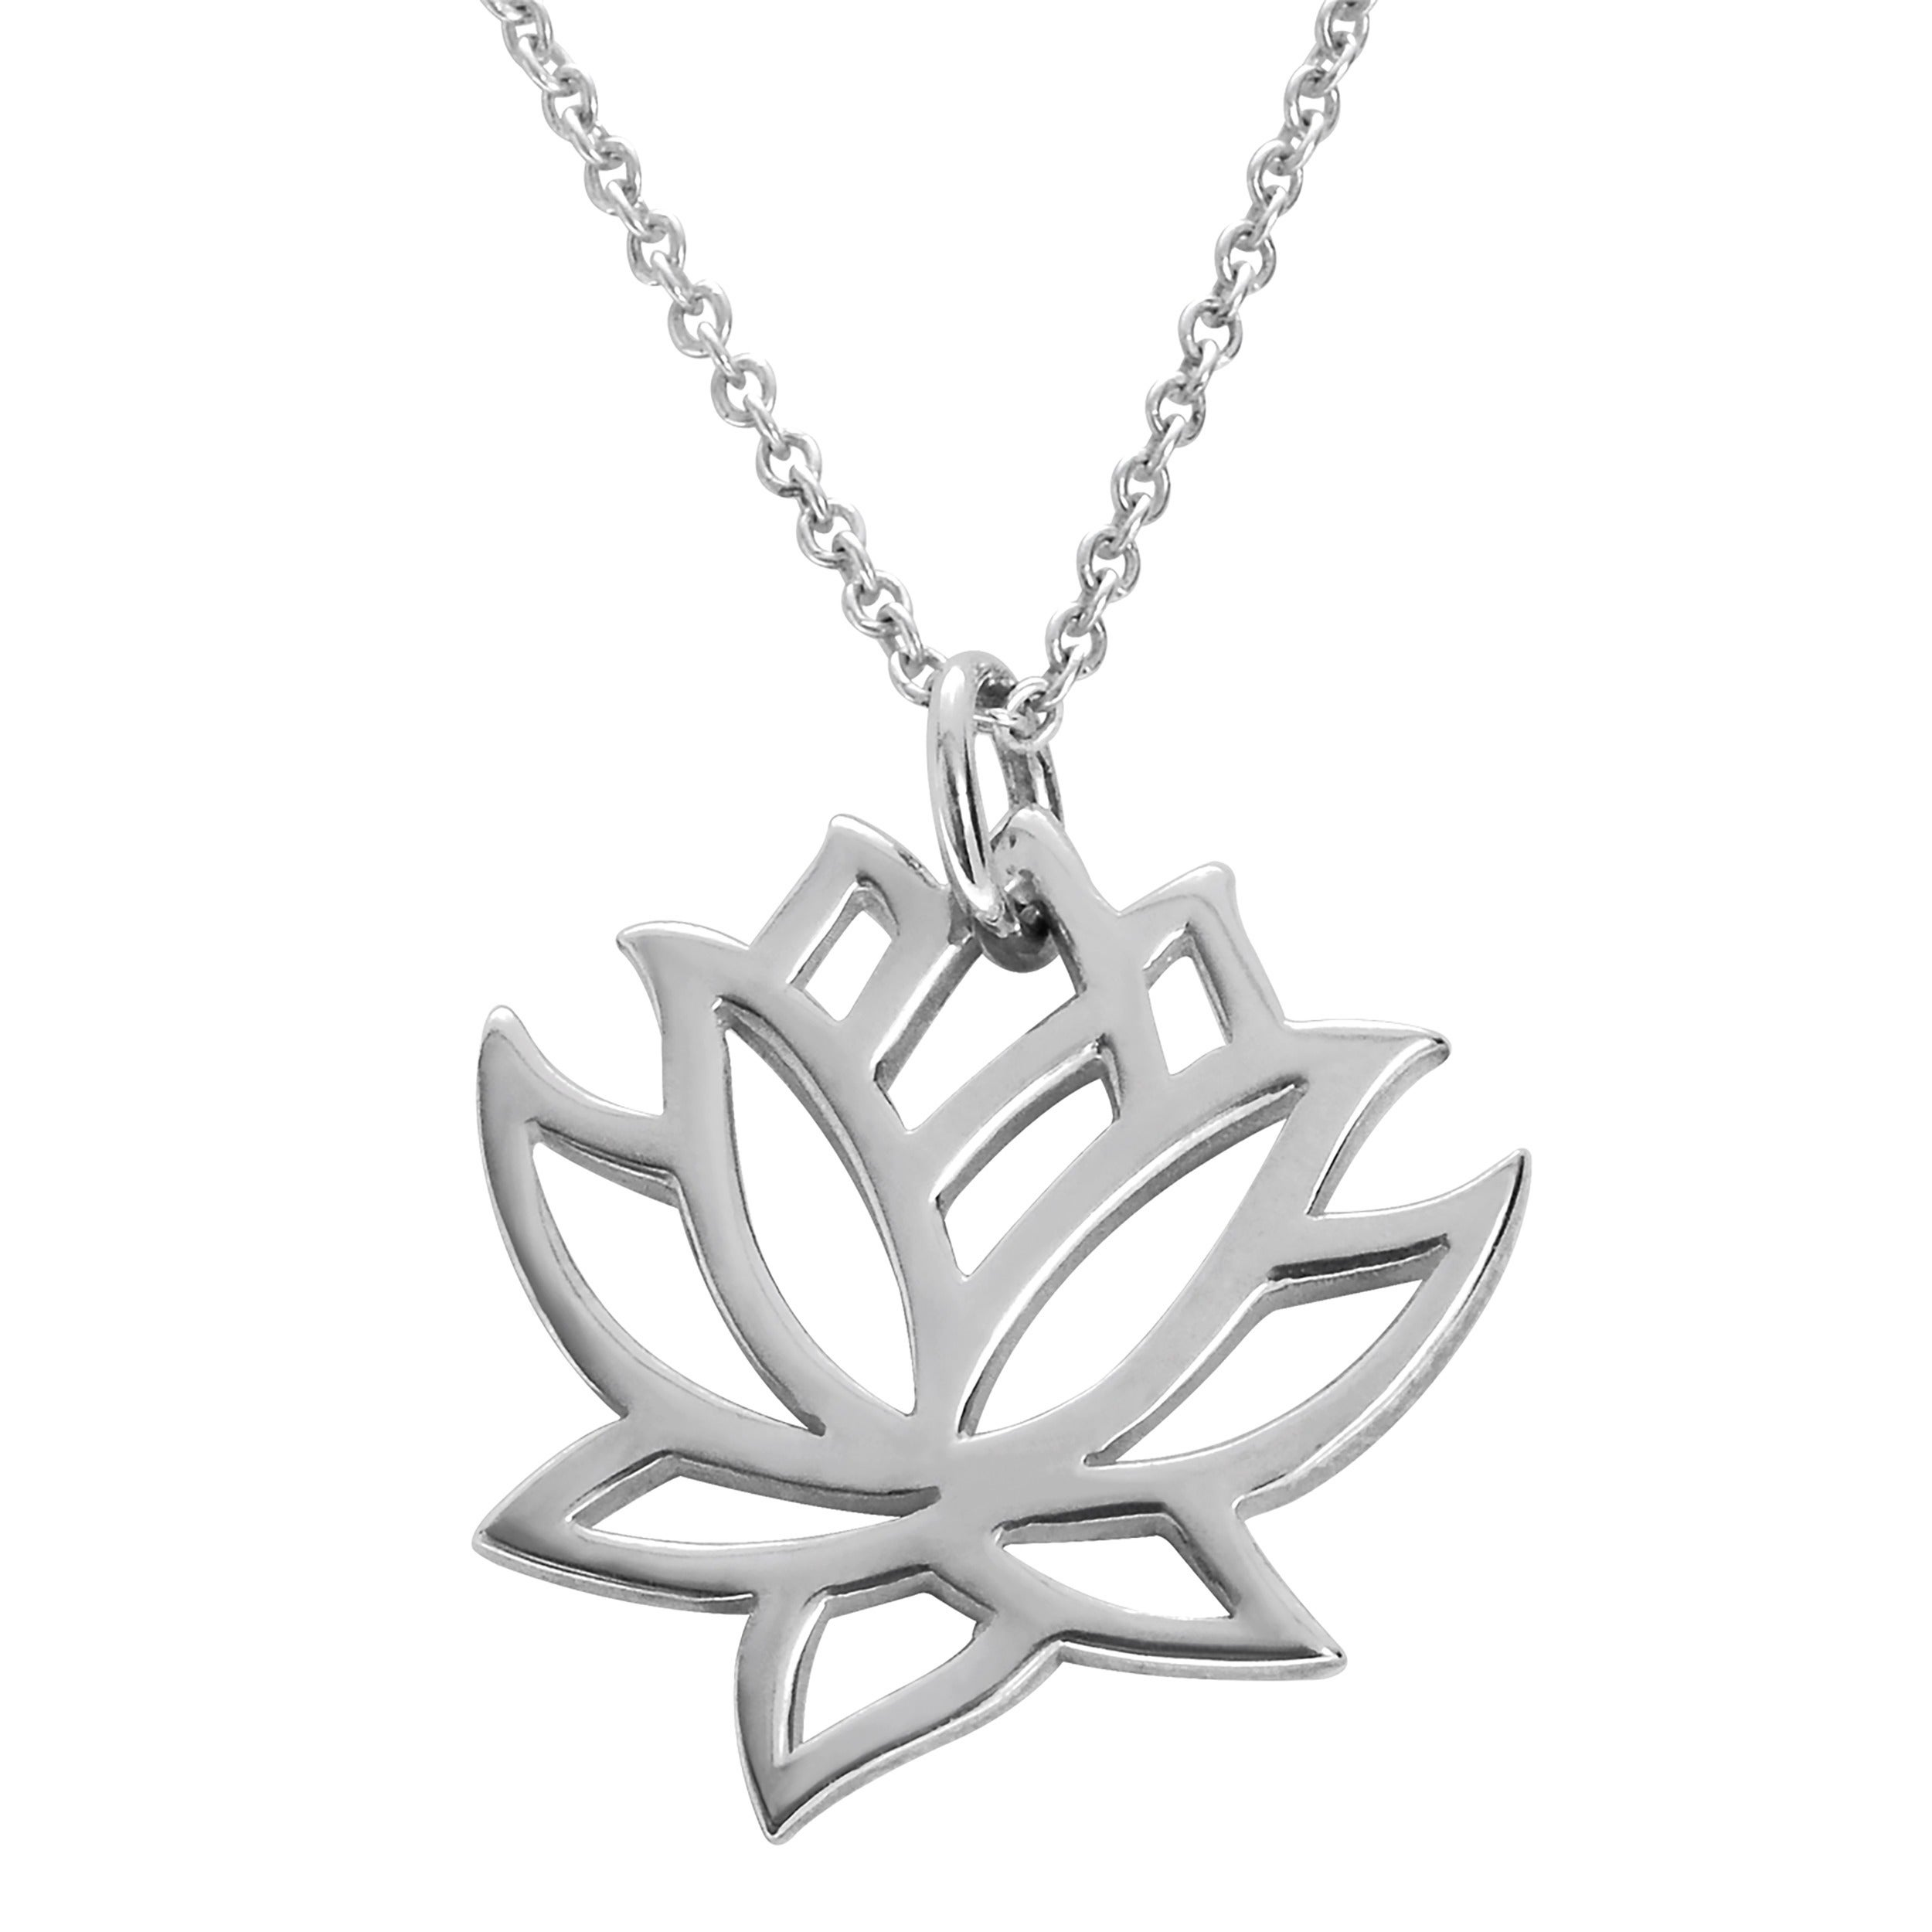 Shop Journee Collection Sterling Silver Lotus Flower Necklace Free